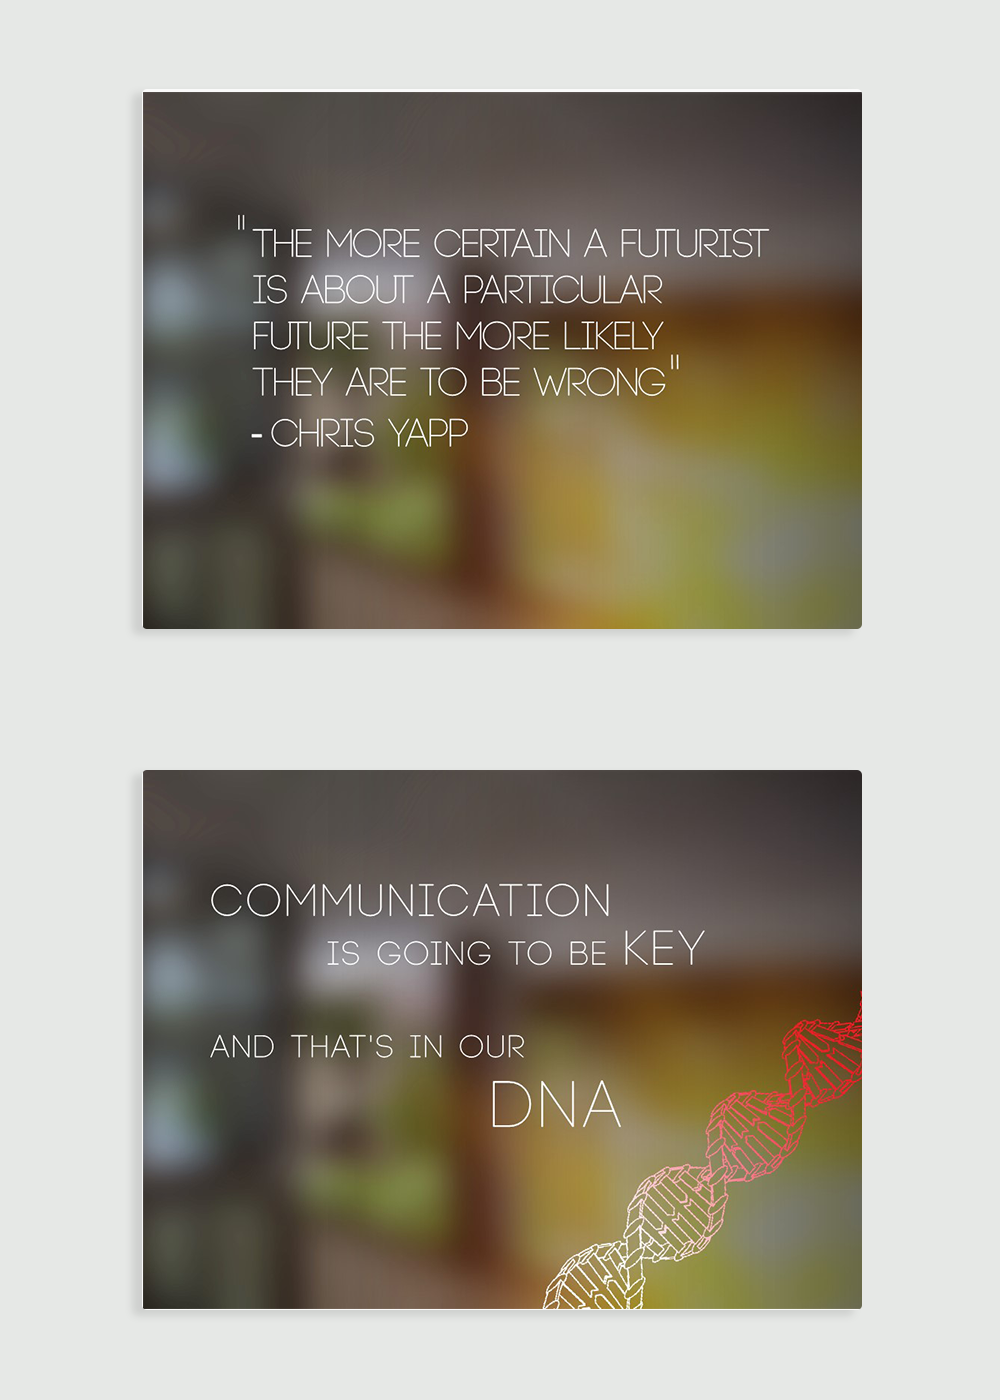 Quote and summary slide